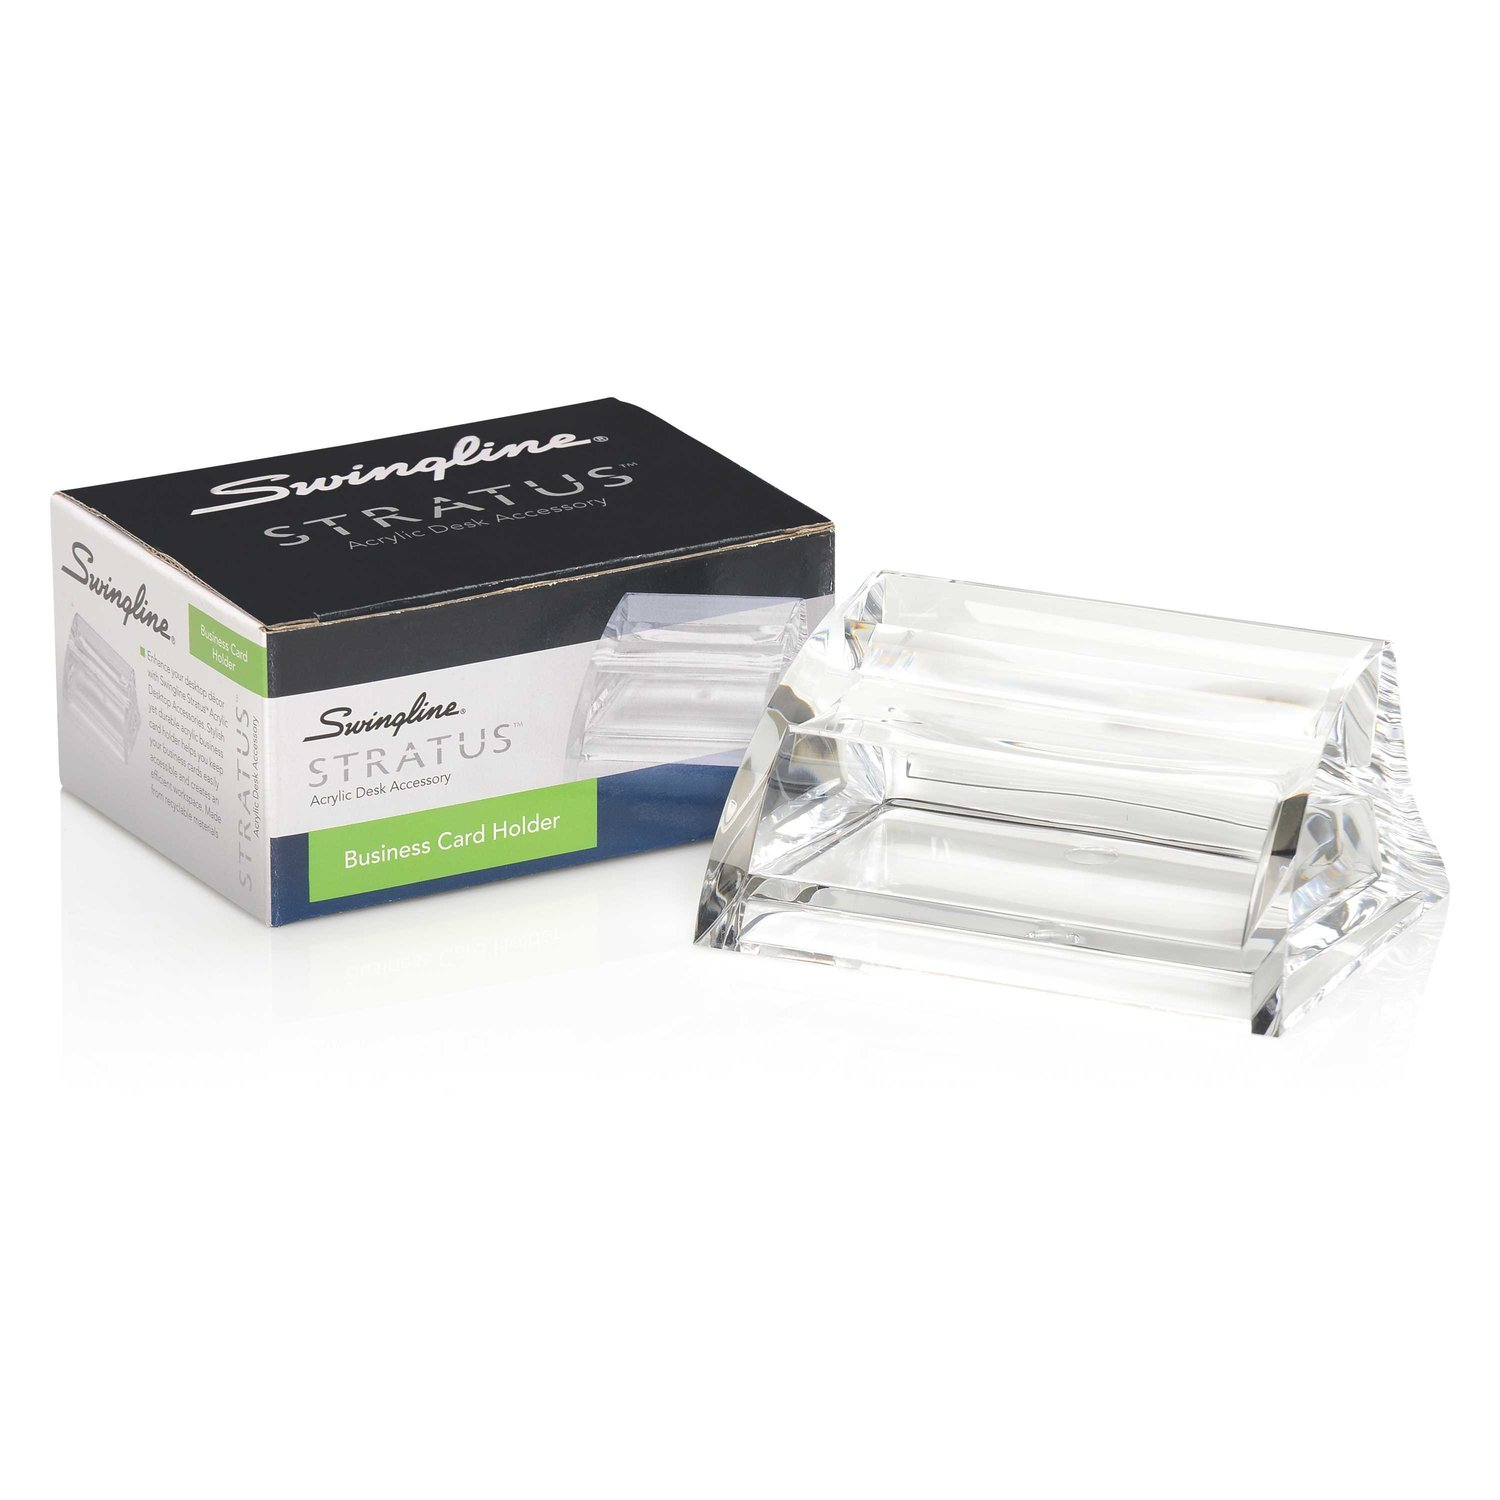 Amazon.com : Business Card Holder by Swingline - Clear Acrylic ...